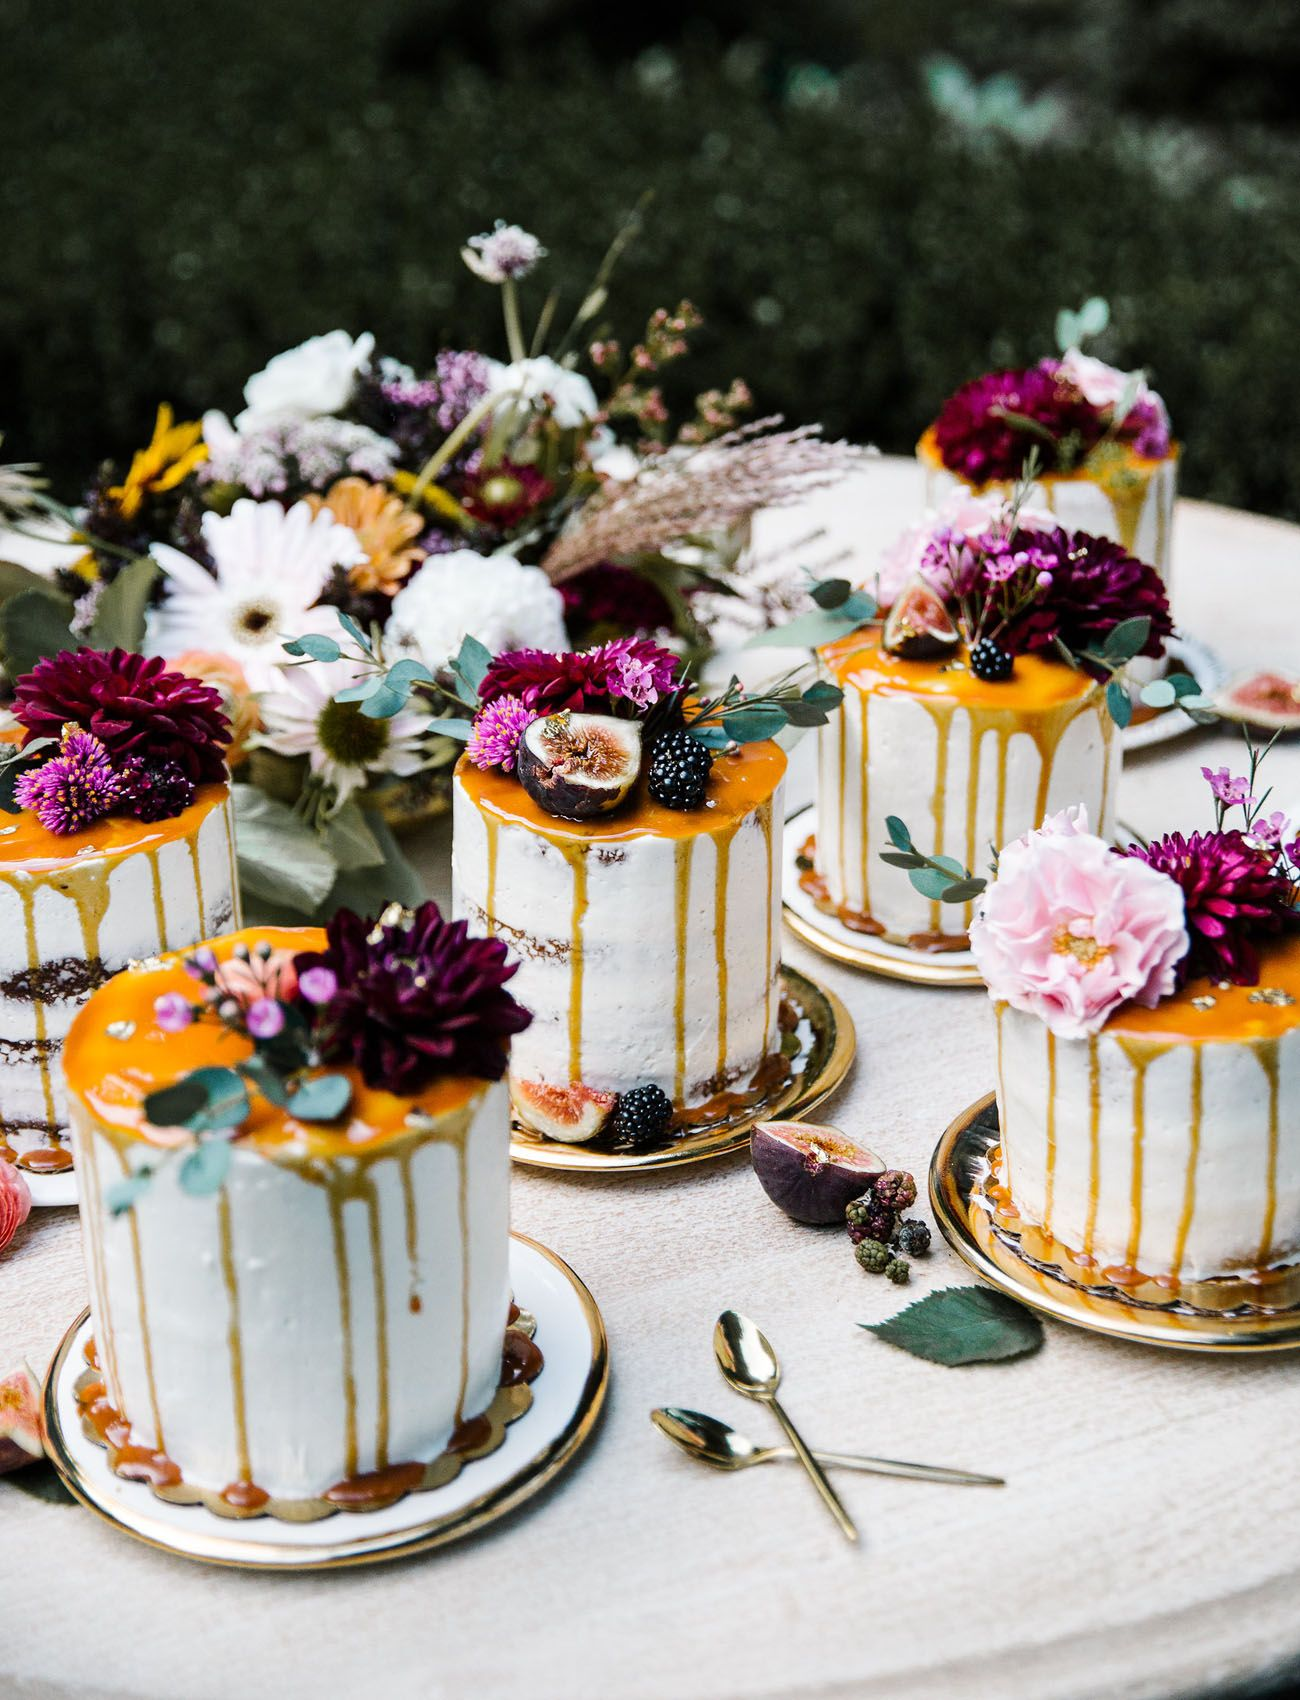 Individual cakes for the sweetheart table plated on gorgeous gold gilded plates from BHLDN. Fall florals atop dripping caramel and flakes of gold make for some stunning treats.